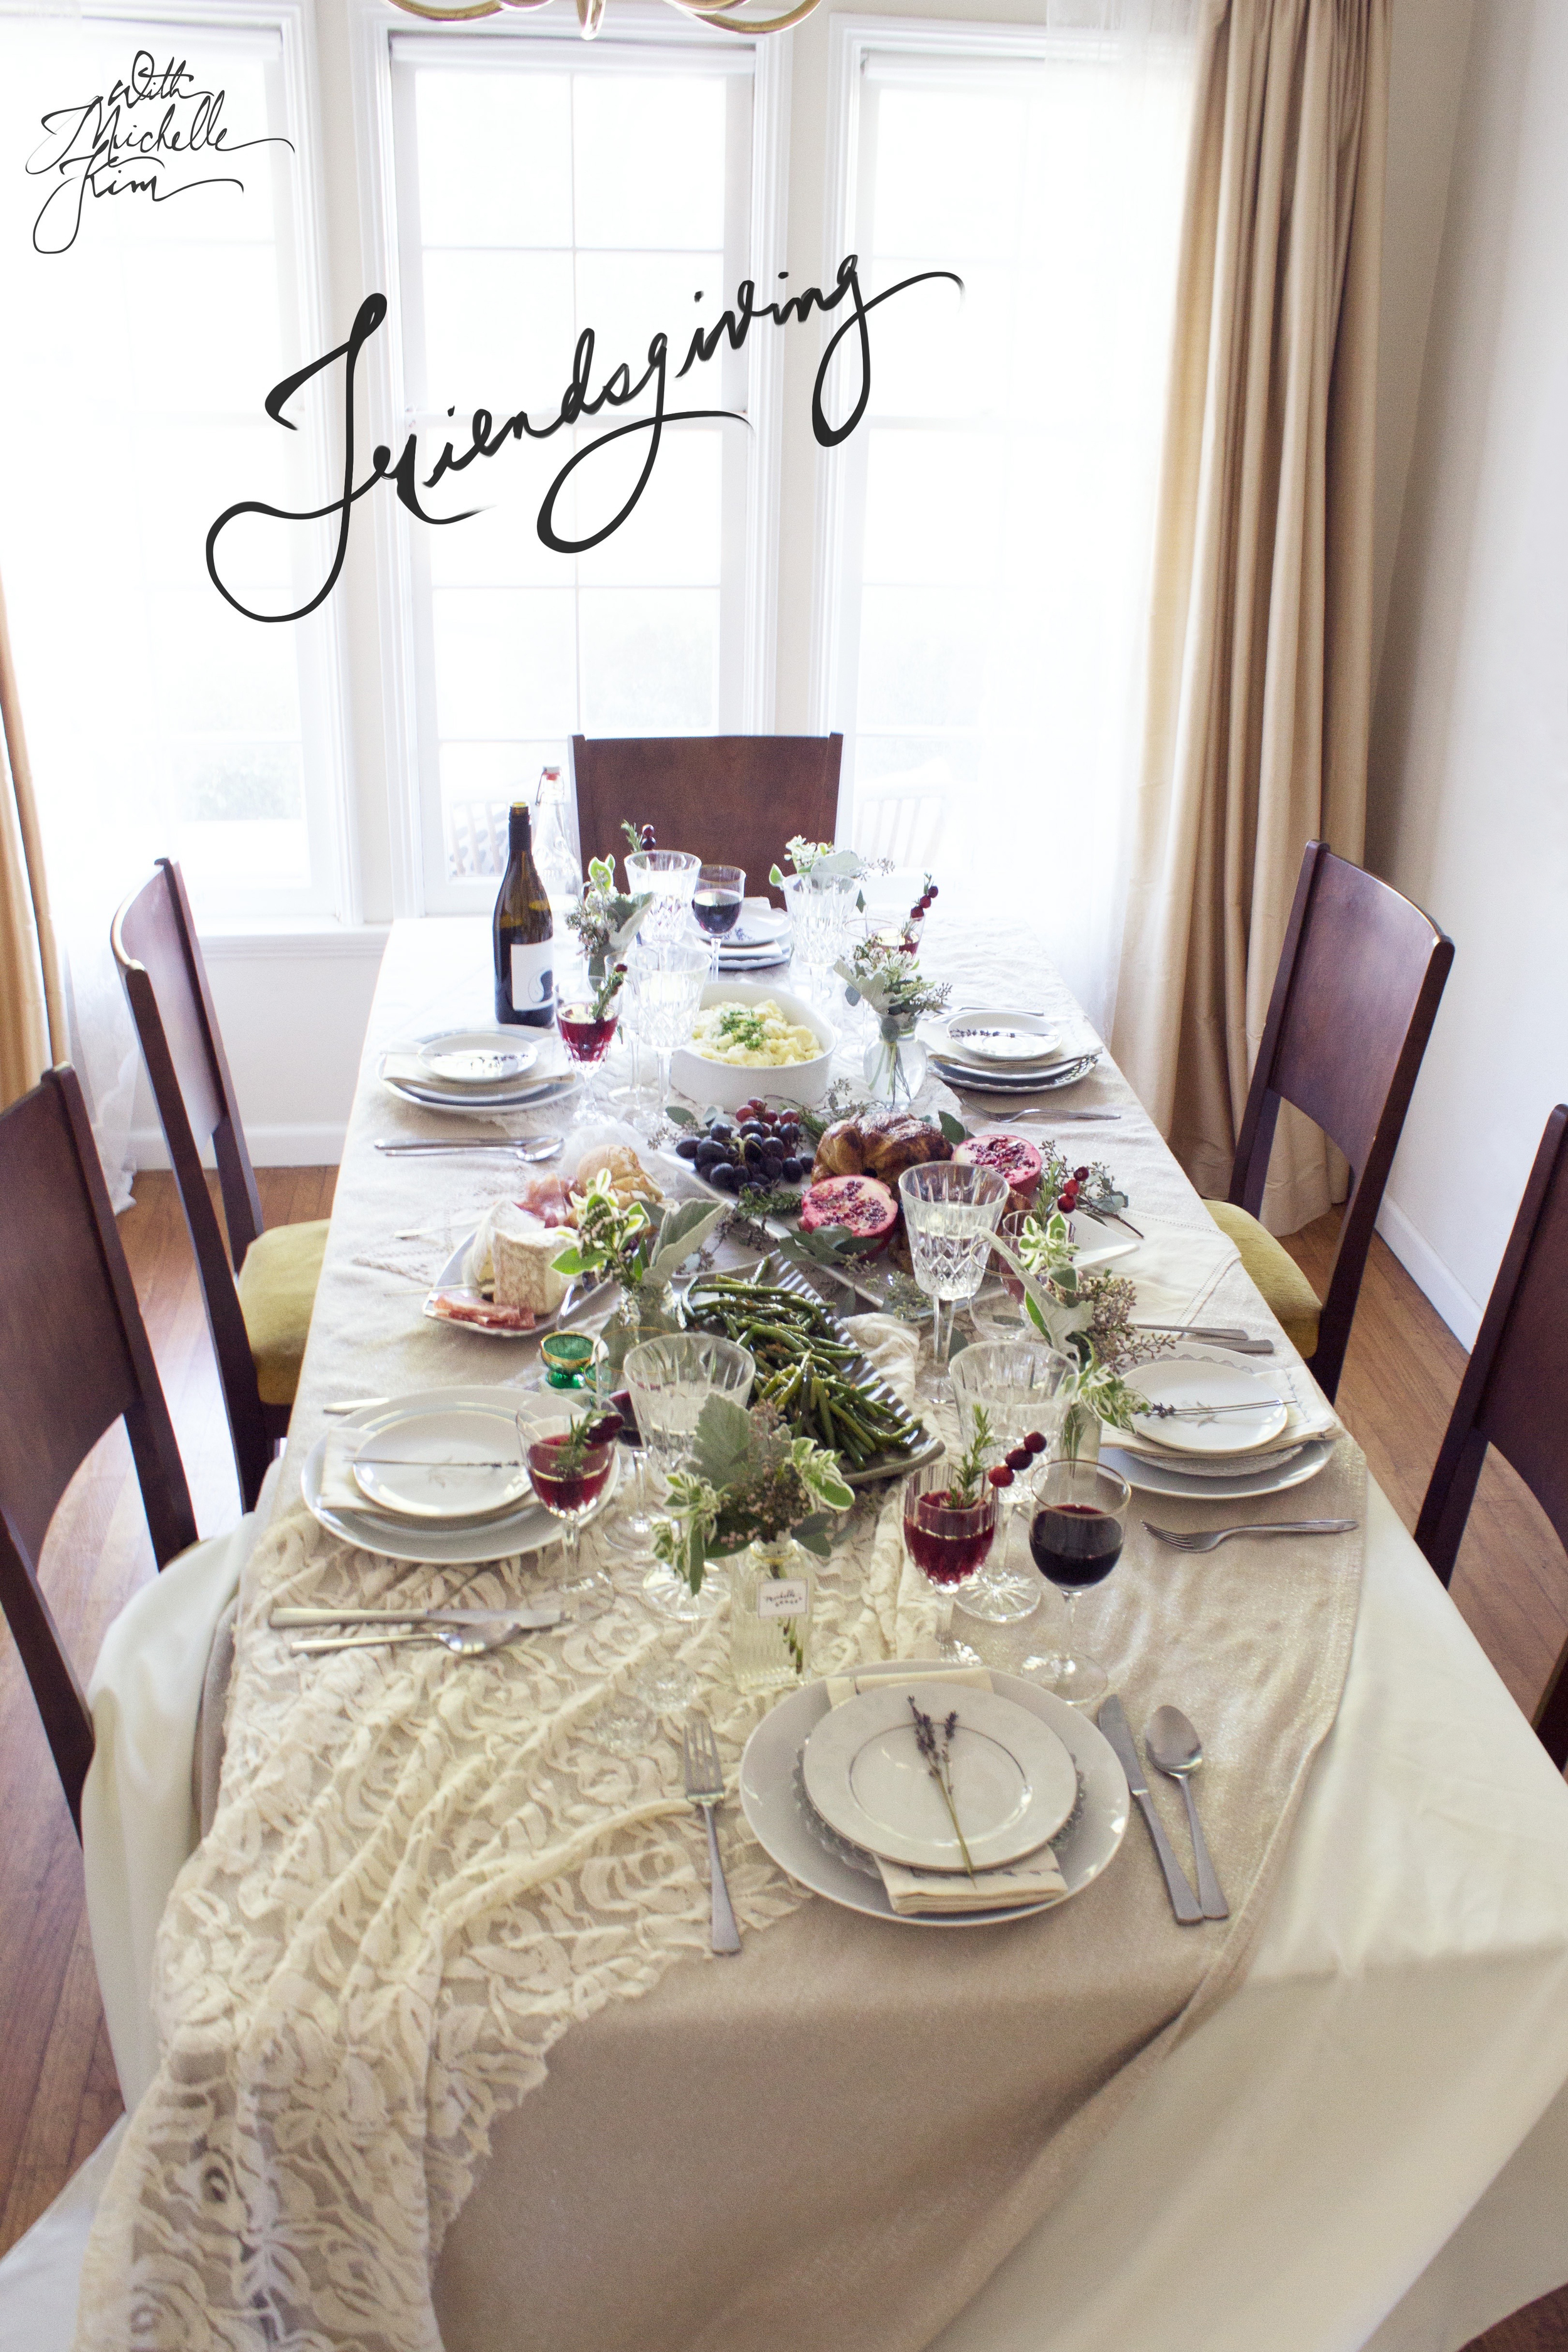 Friendsgiving Tablescape (www.withmichellekim.com)